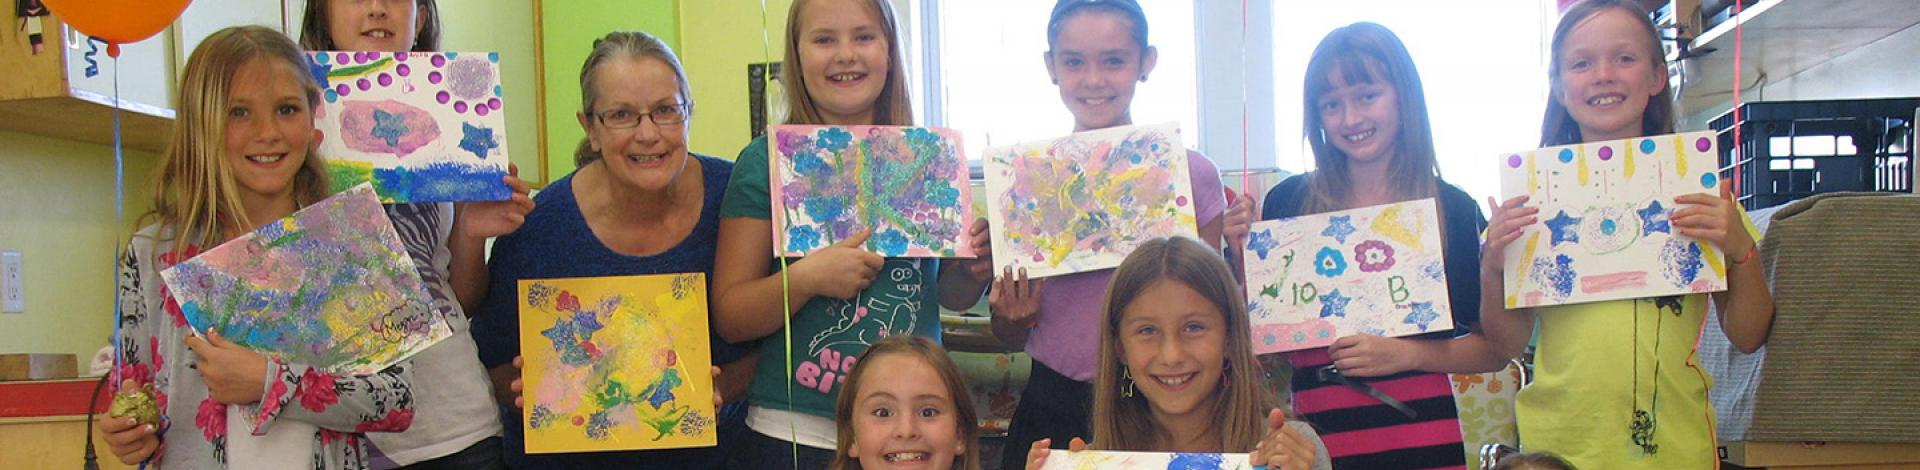 Kids painting birthday party